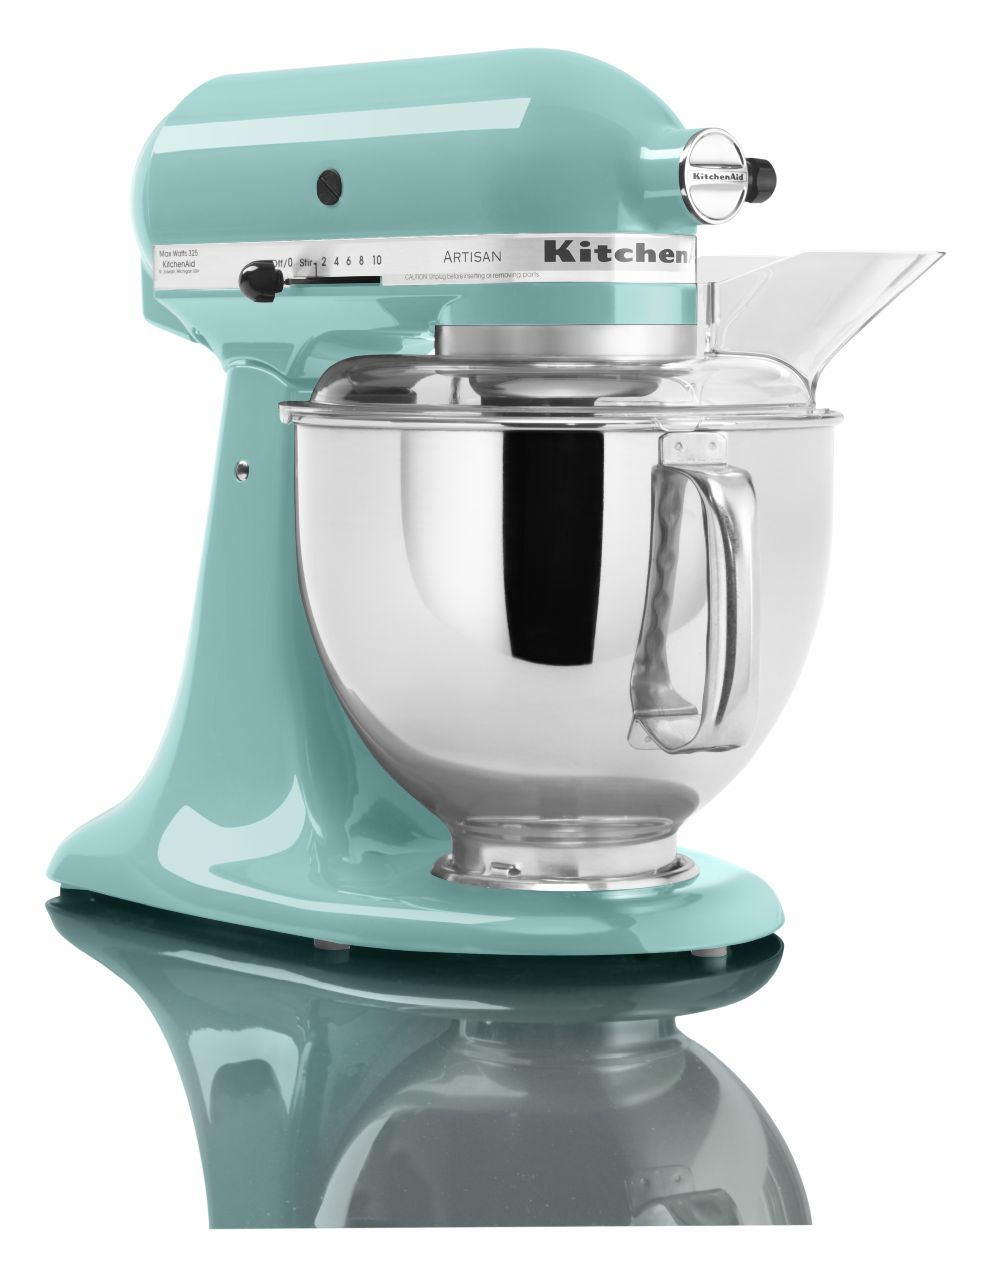 Awesome Details About Kitchenaid Artisan Series 5 Quart Tilt Head Stand Mixer Ksm150Ps Home Remodeling Inspirations Propsscottssportslandcom